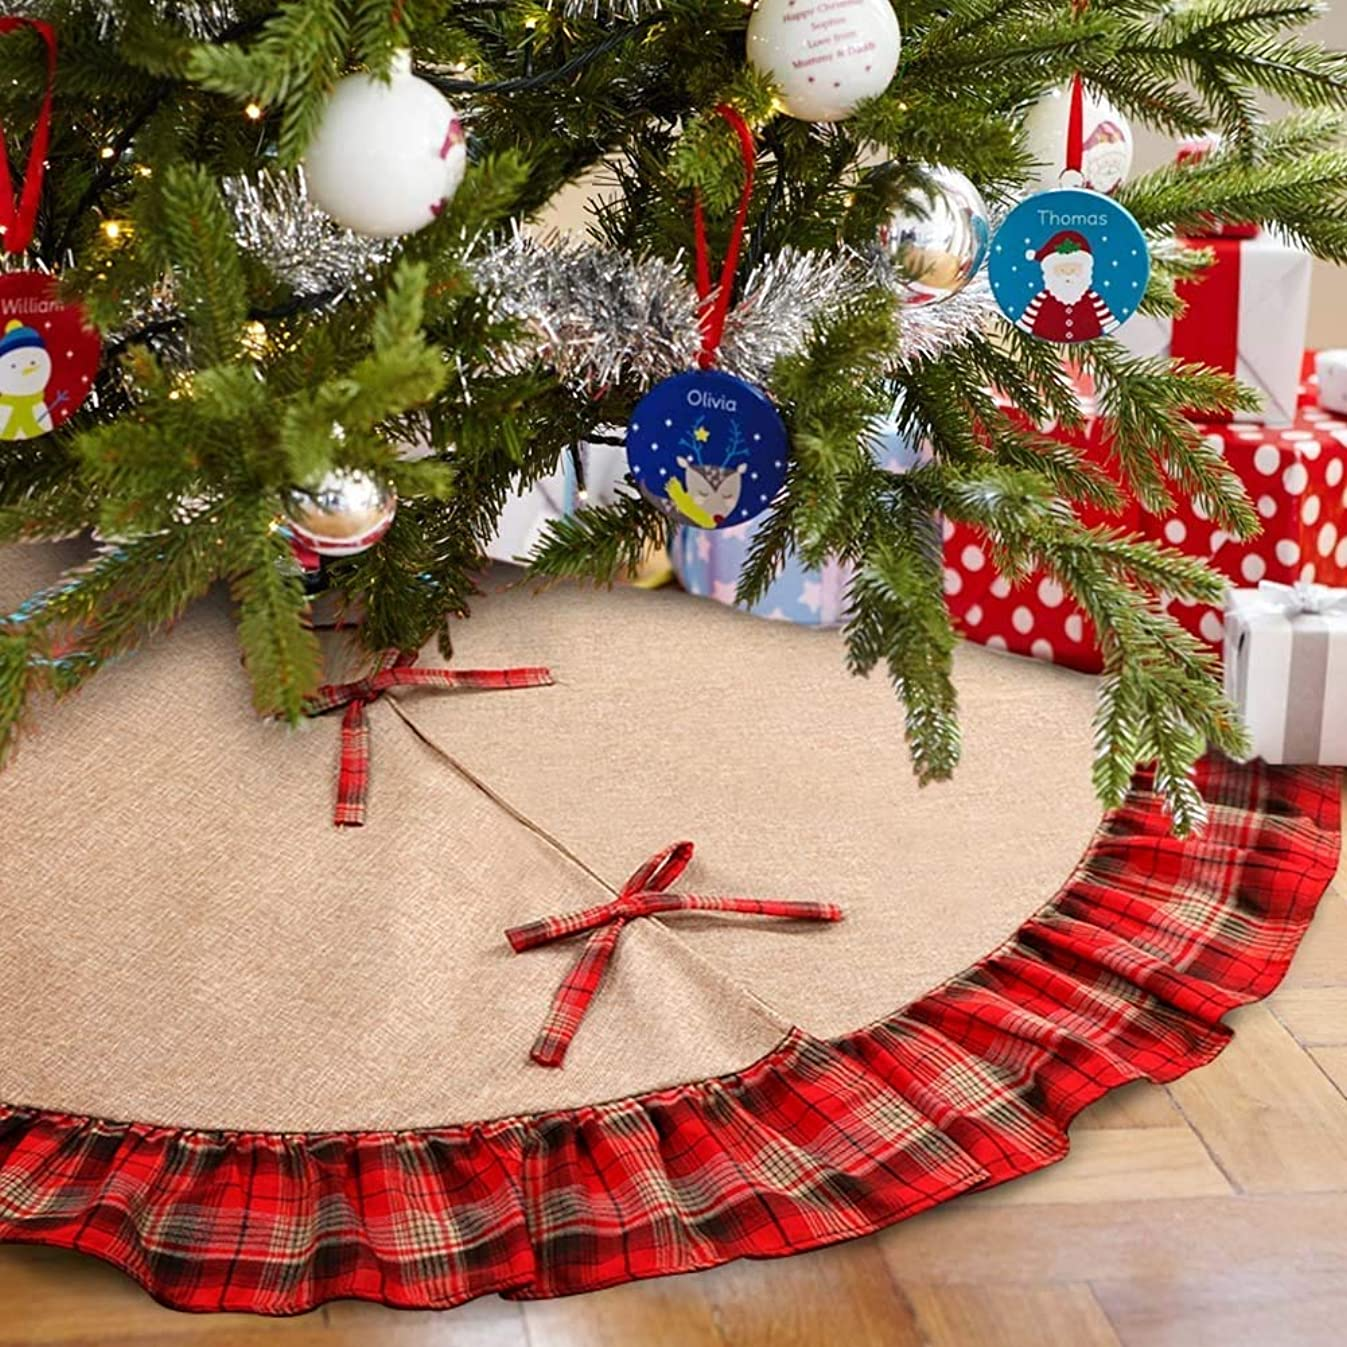 MeeQee 48 Inches Christmas Tree Skirt, Line Burlap Tree Skirt Plaid Ruffle Edge Border Large Round for Holiday Christmas Party Decorations, Line Burlap